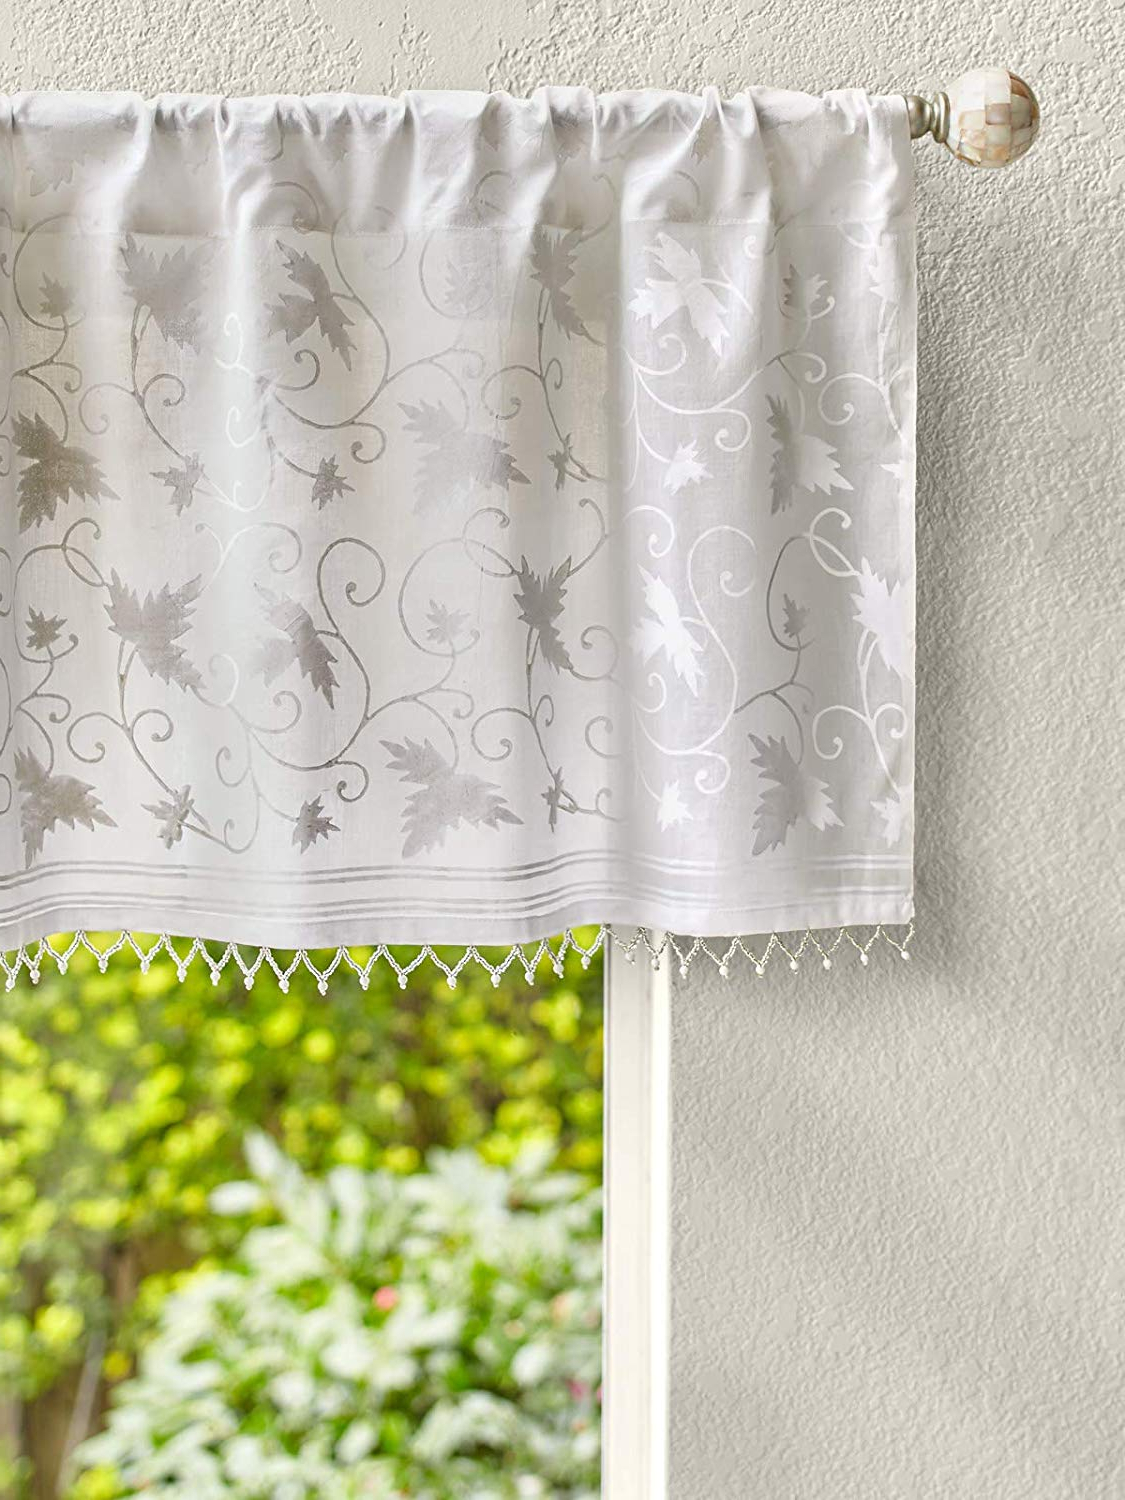 Favorite Saffron Marigold – Ivy Lace – White On White Country Cottage Floral Hand Printed – Beaded Sheer Cotton Voile Window Valance Curtain – Rod Pocket – Regarding Cottage Ivy Curtain Tiers (View 8 of 20)